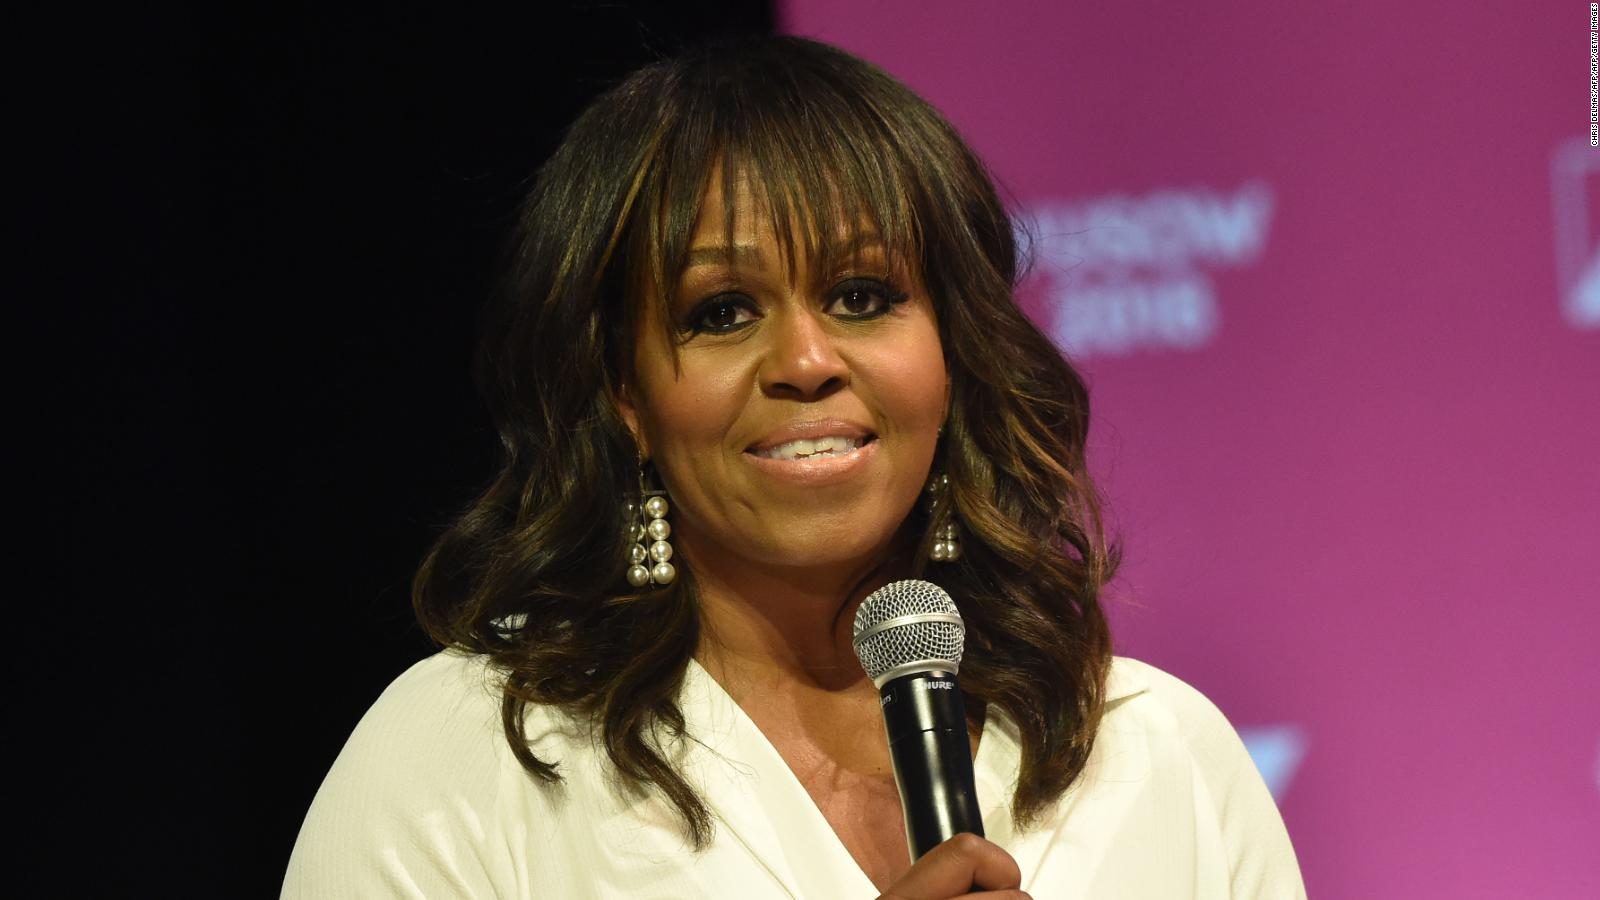 Fappening Michelle Obama nudes (44 foto and video), Topless, Leaked, Boobs, braless 2017